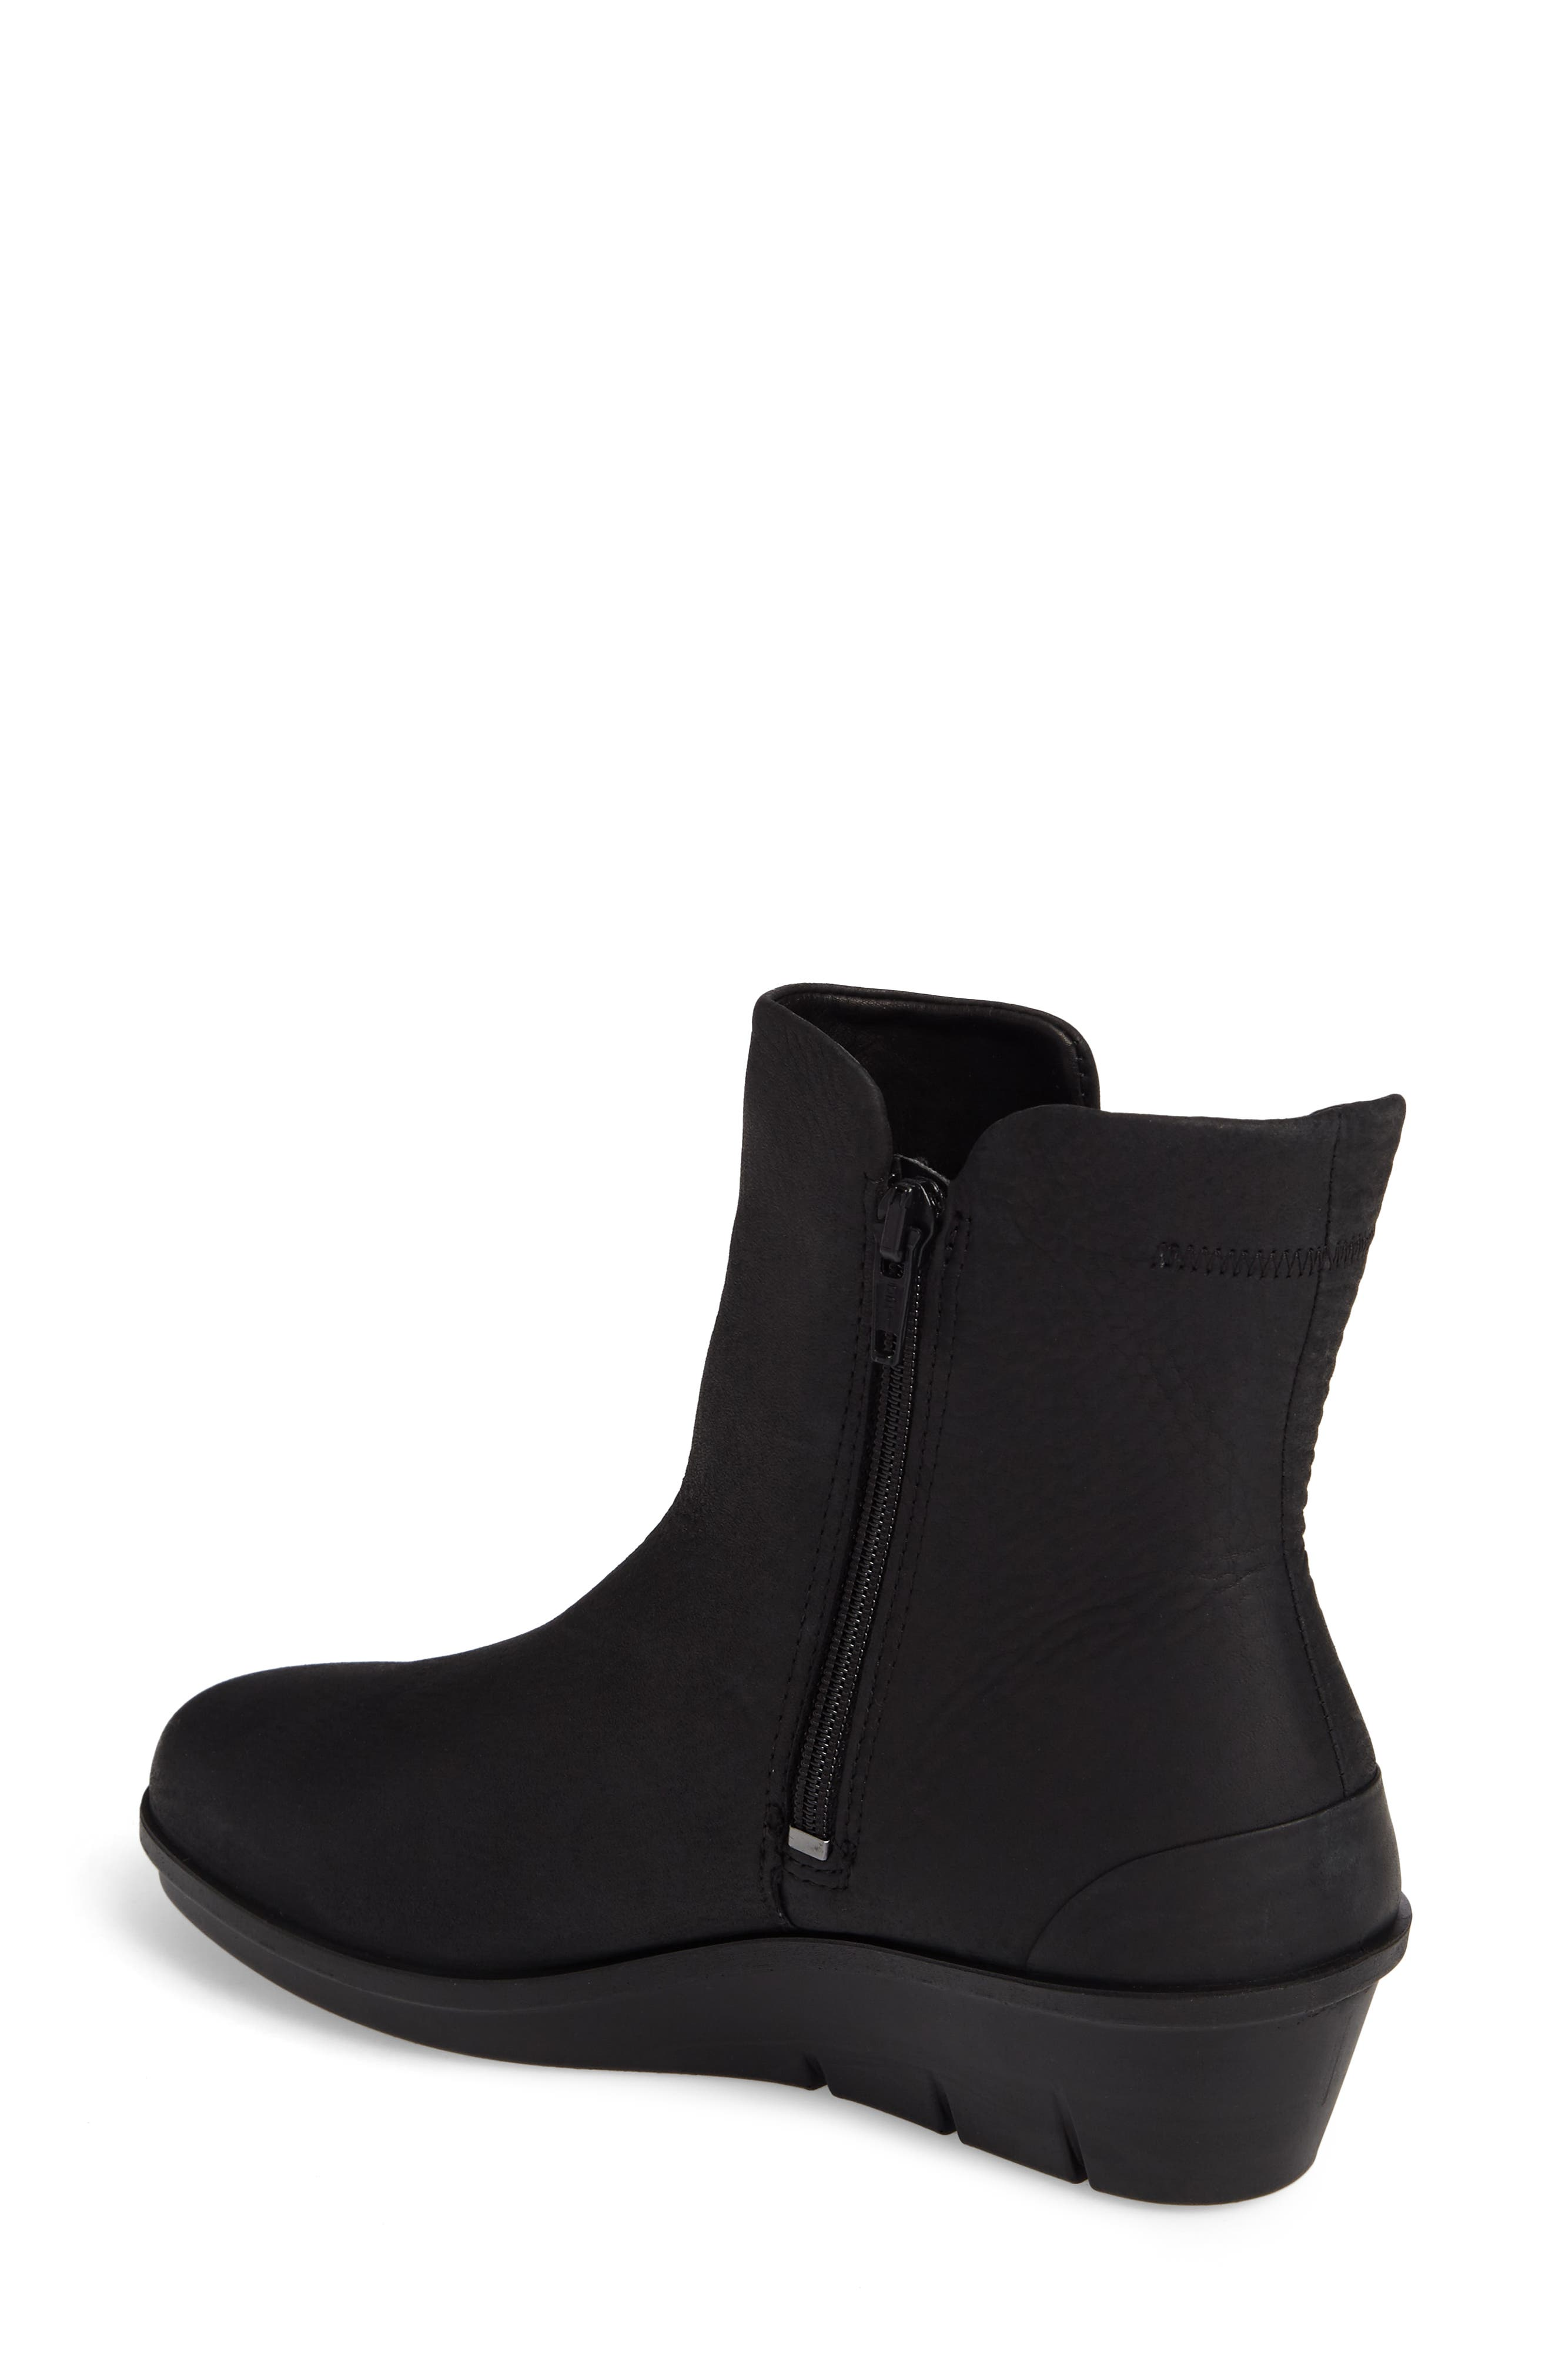 Skyler Notched Wedge Bootie,                             Alternate thumbnail 2, color,                             001